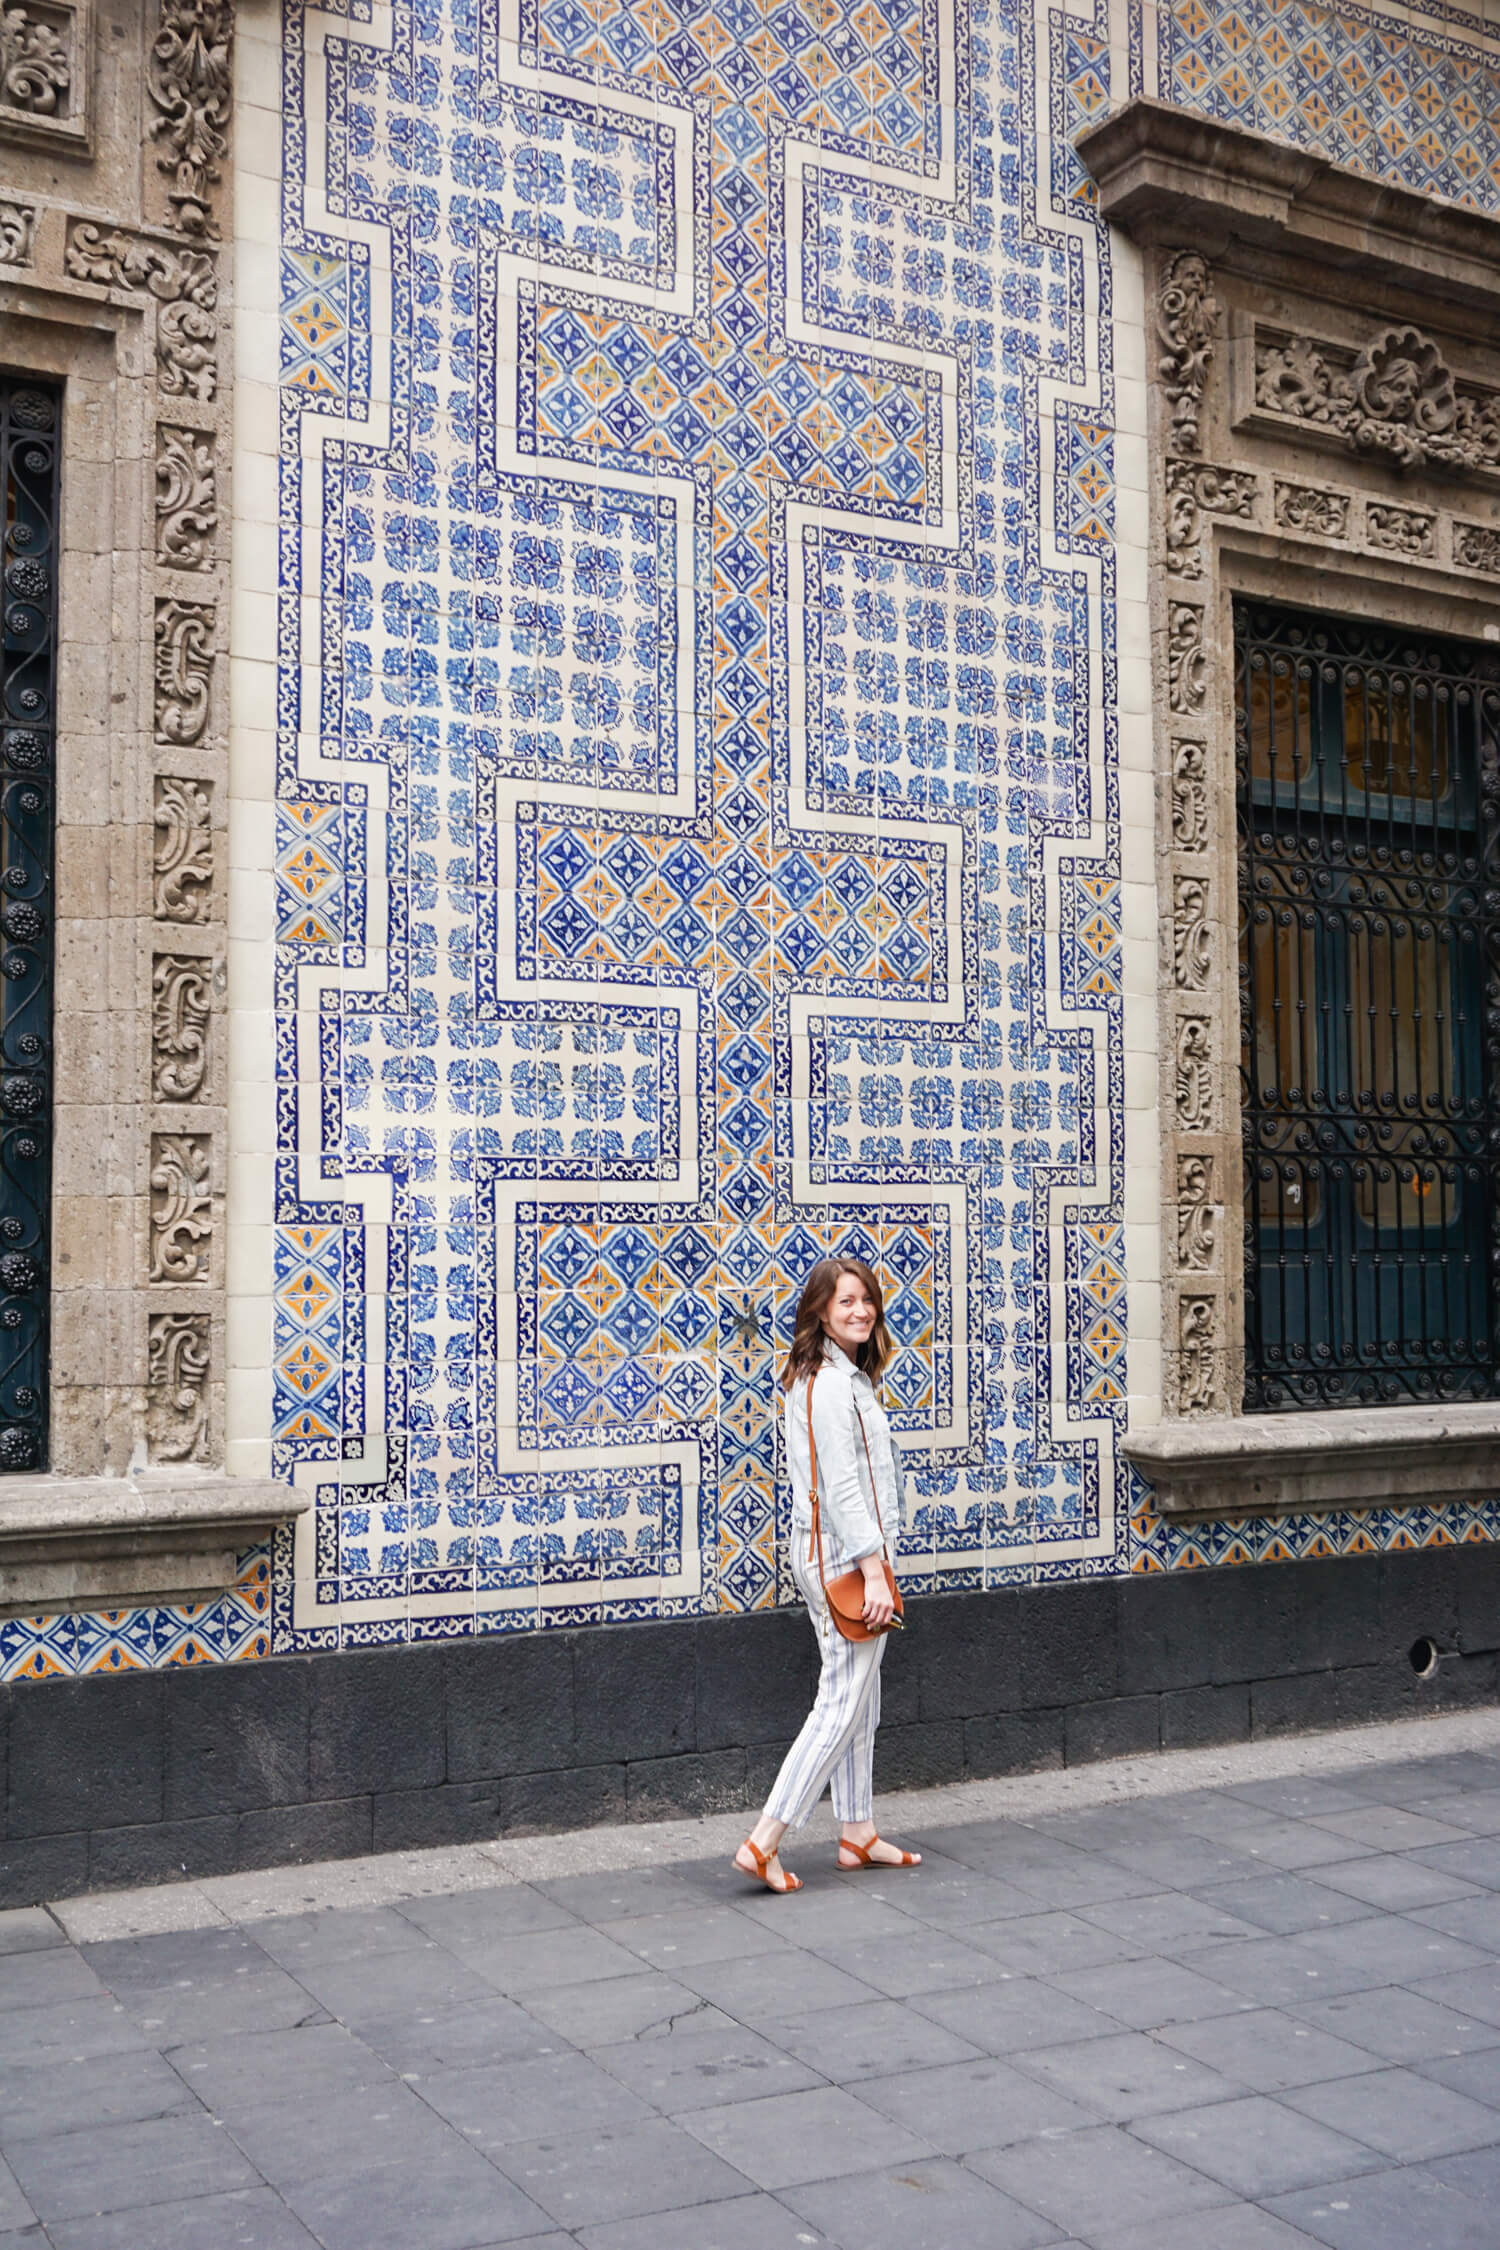 Visiting mexico city what to see eat and do and for Casa de los azulejos en mexico